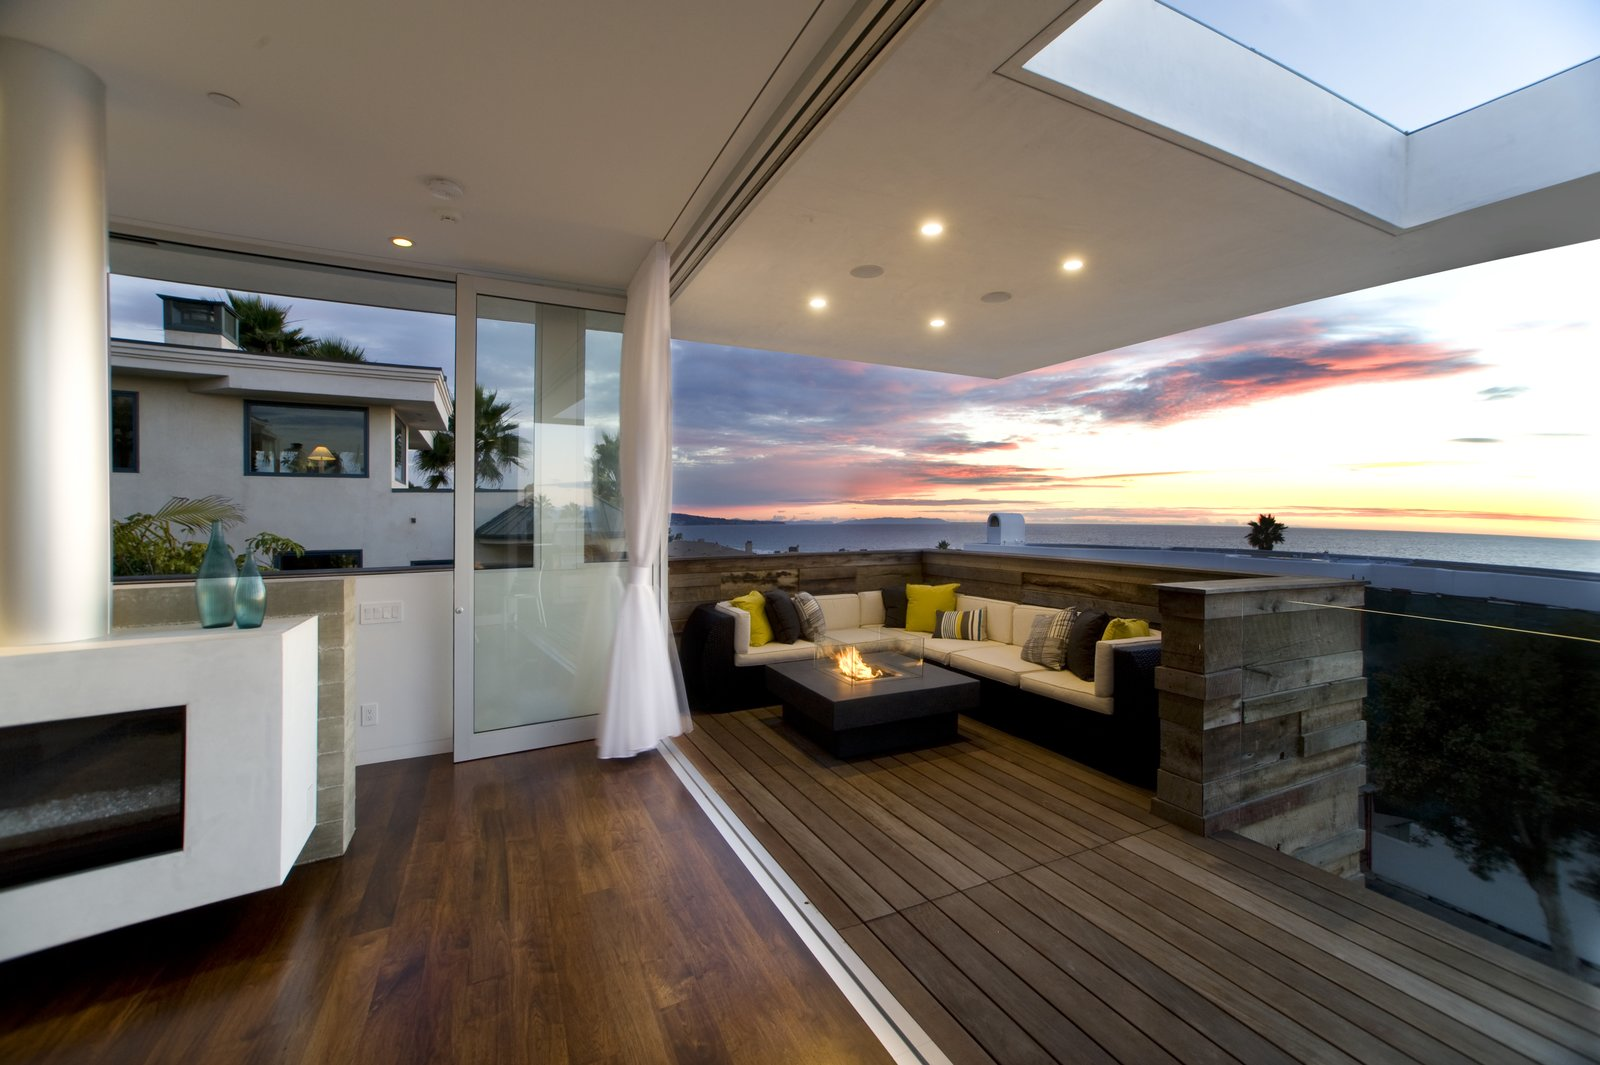 Terrace  Manhattan Beach Residence by Daryl Olesinski